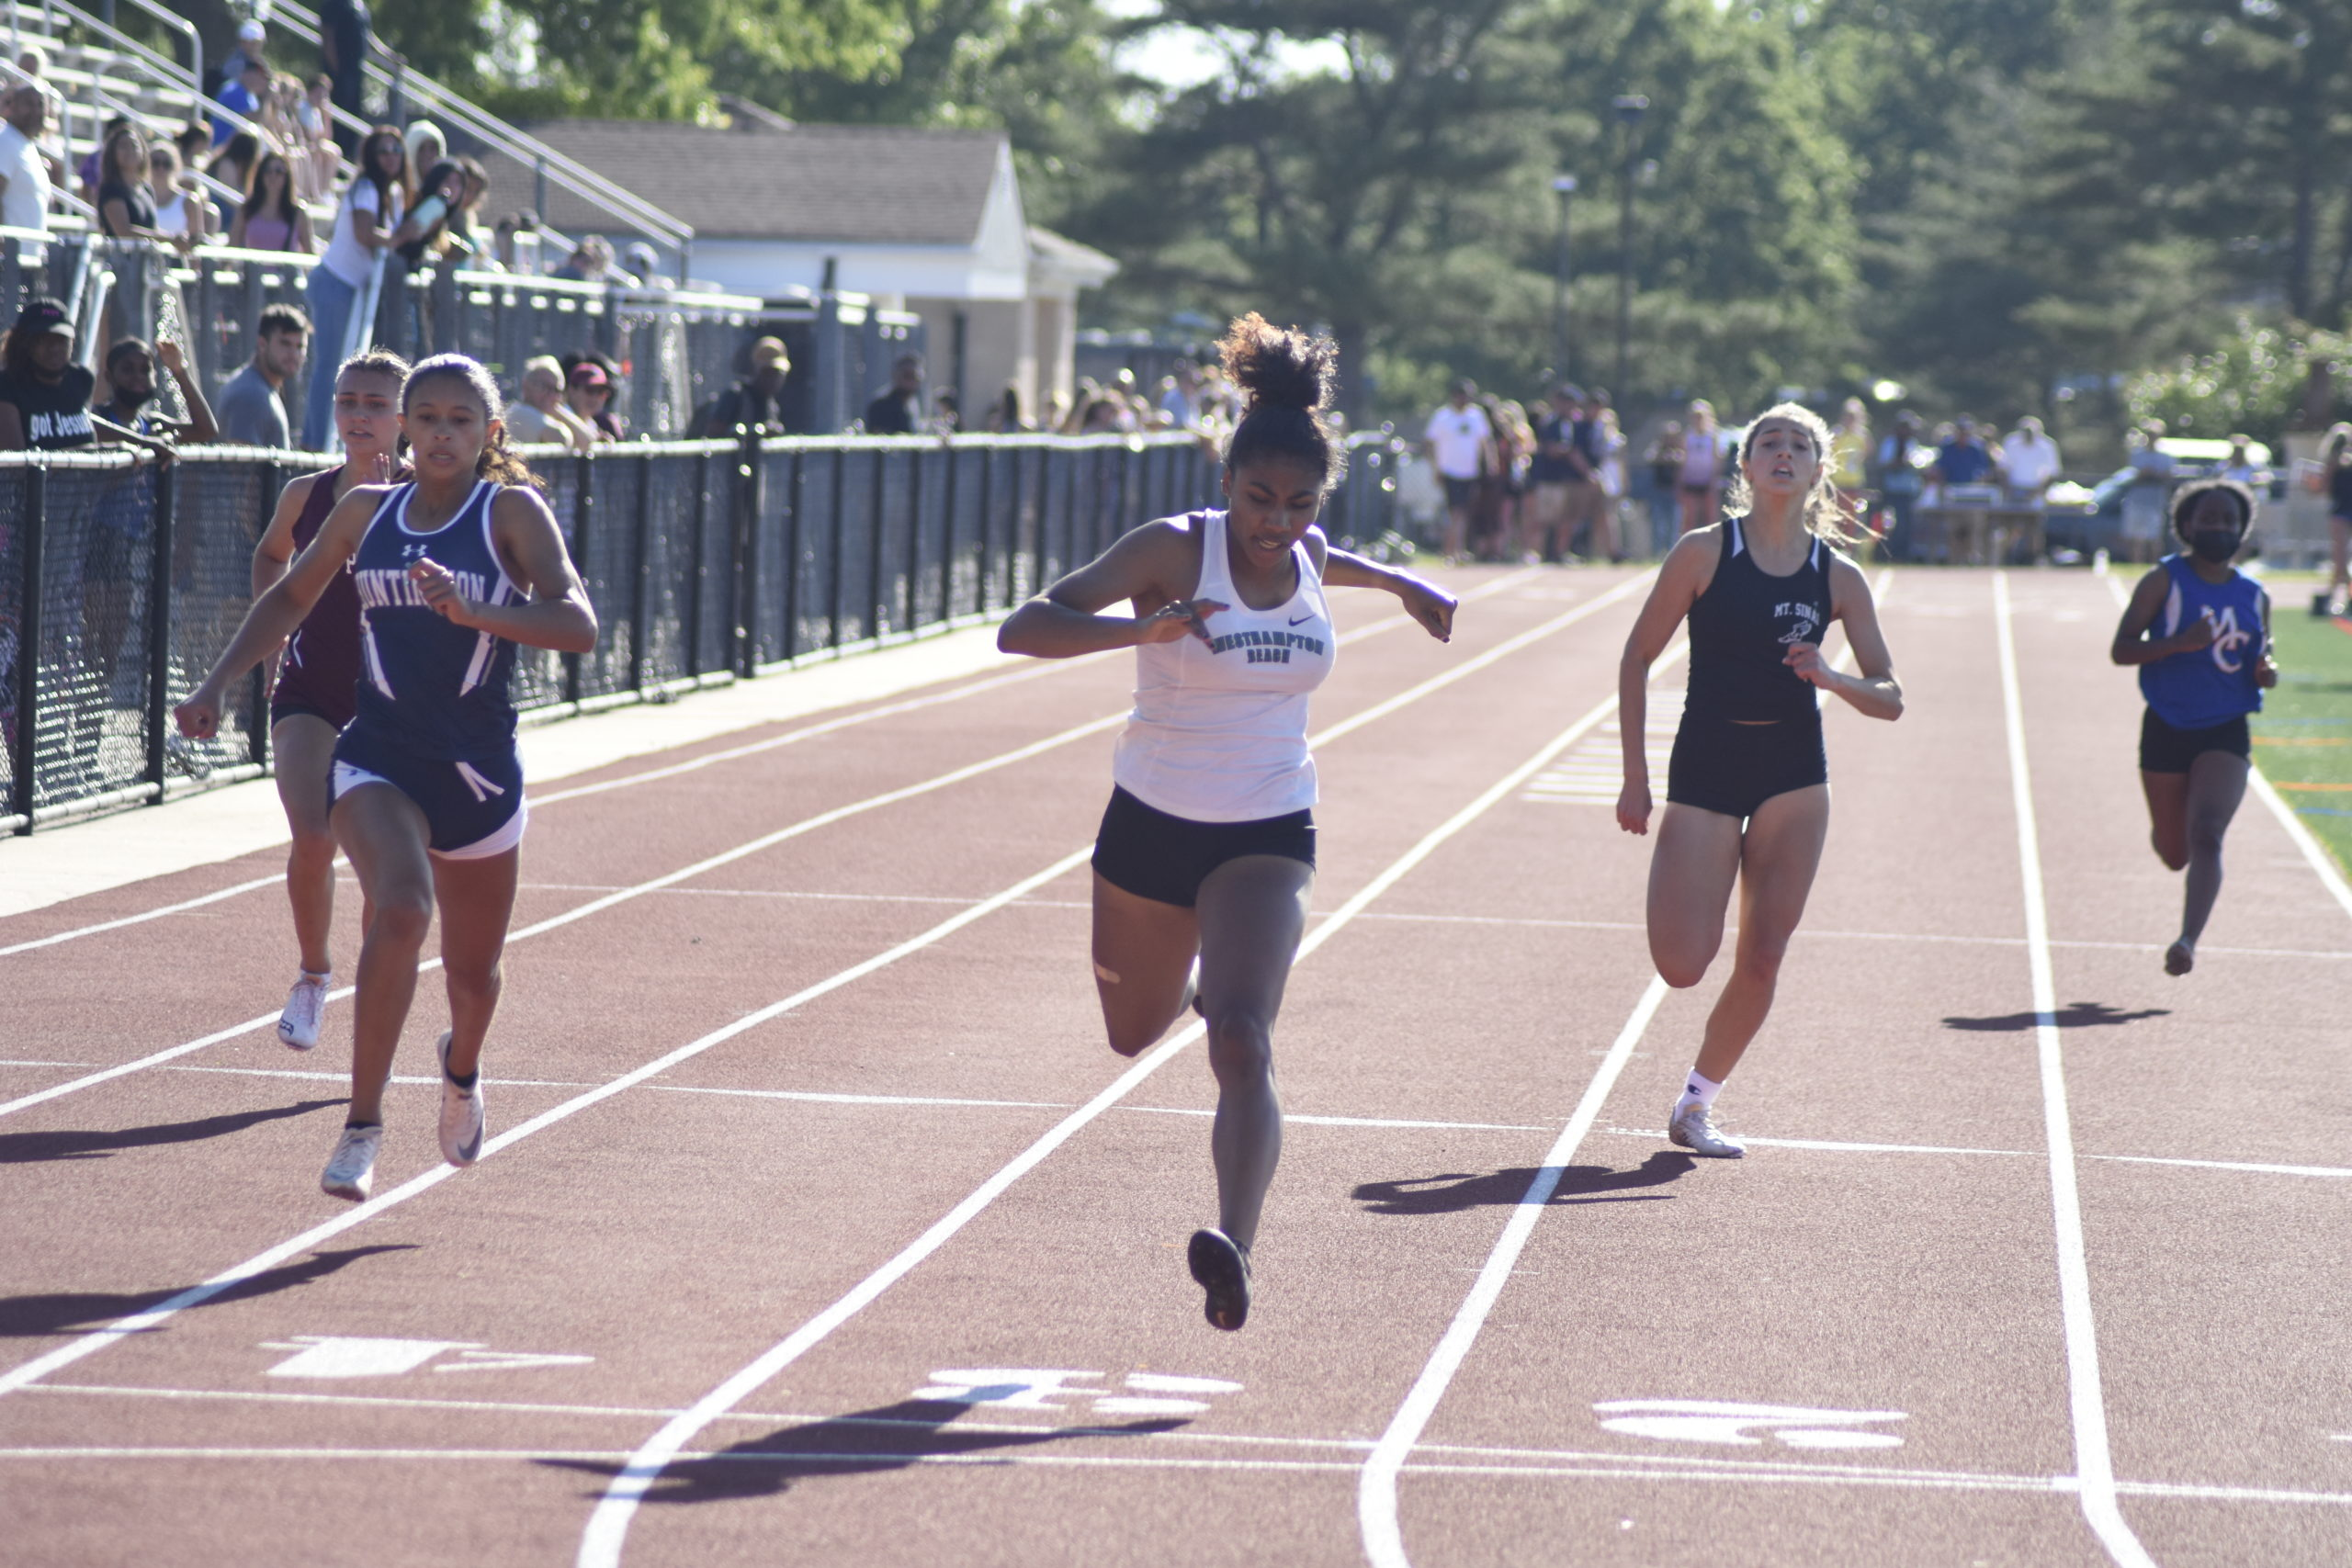 Westhampton Beach senior Oceane Ode crosses the finish line first in the 200-meter dash. She also won the 100-meter dash and was named Sprinter of the Year.